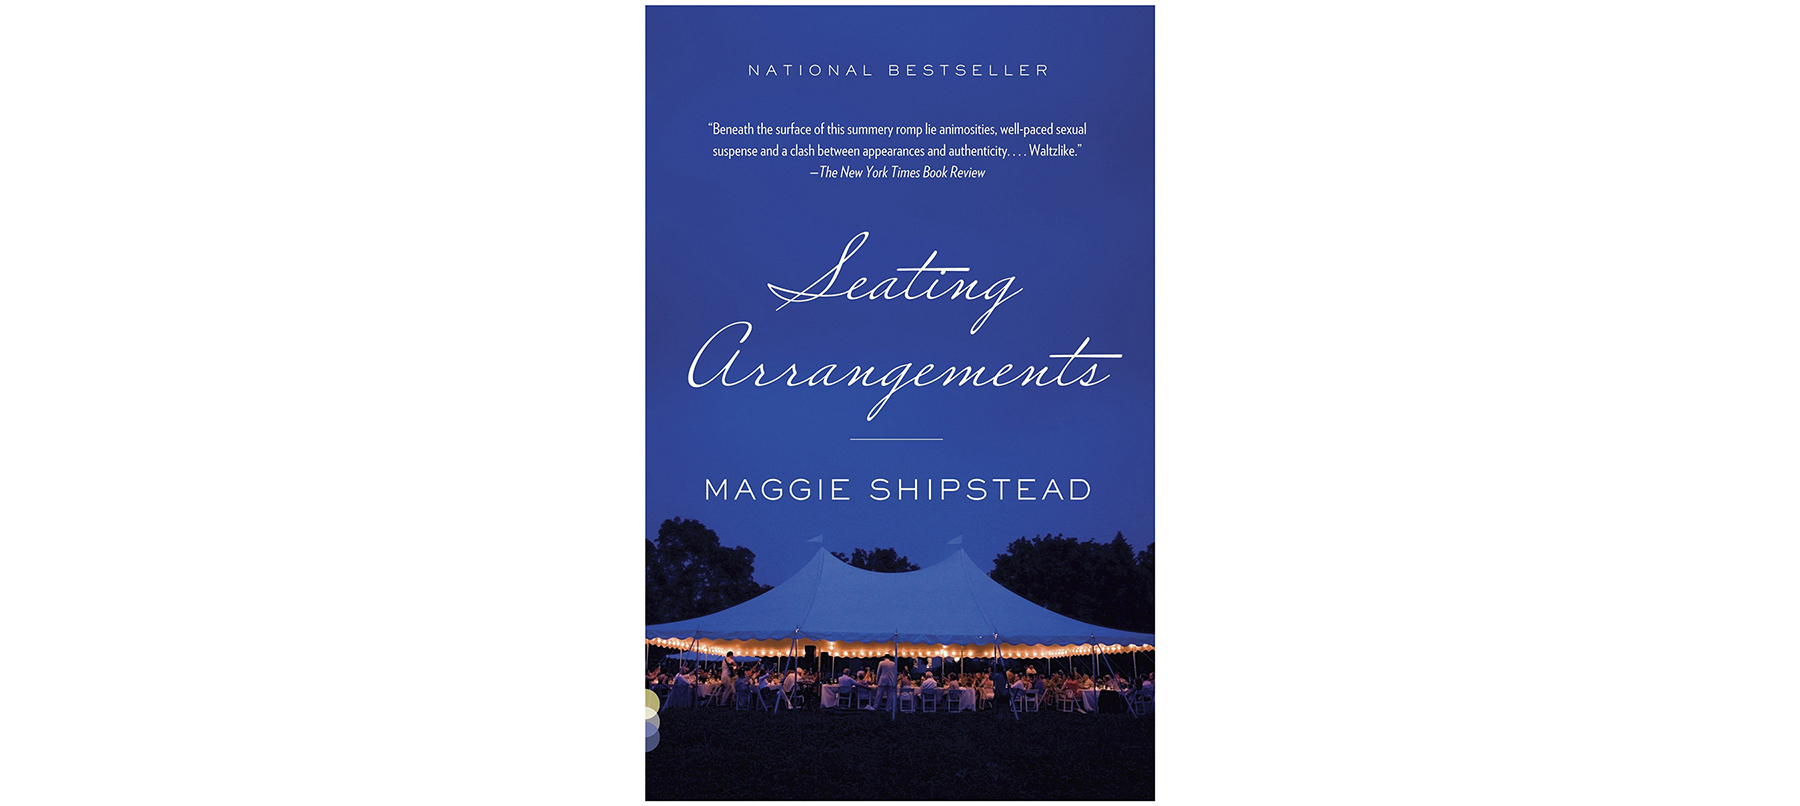 Cover of Seating Arrangements, by Maggie Shipstead